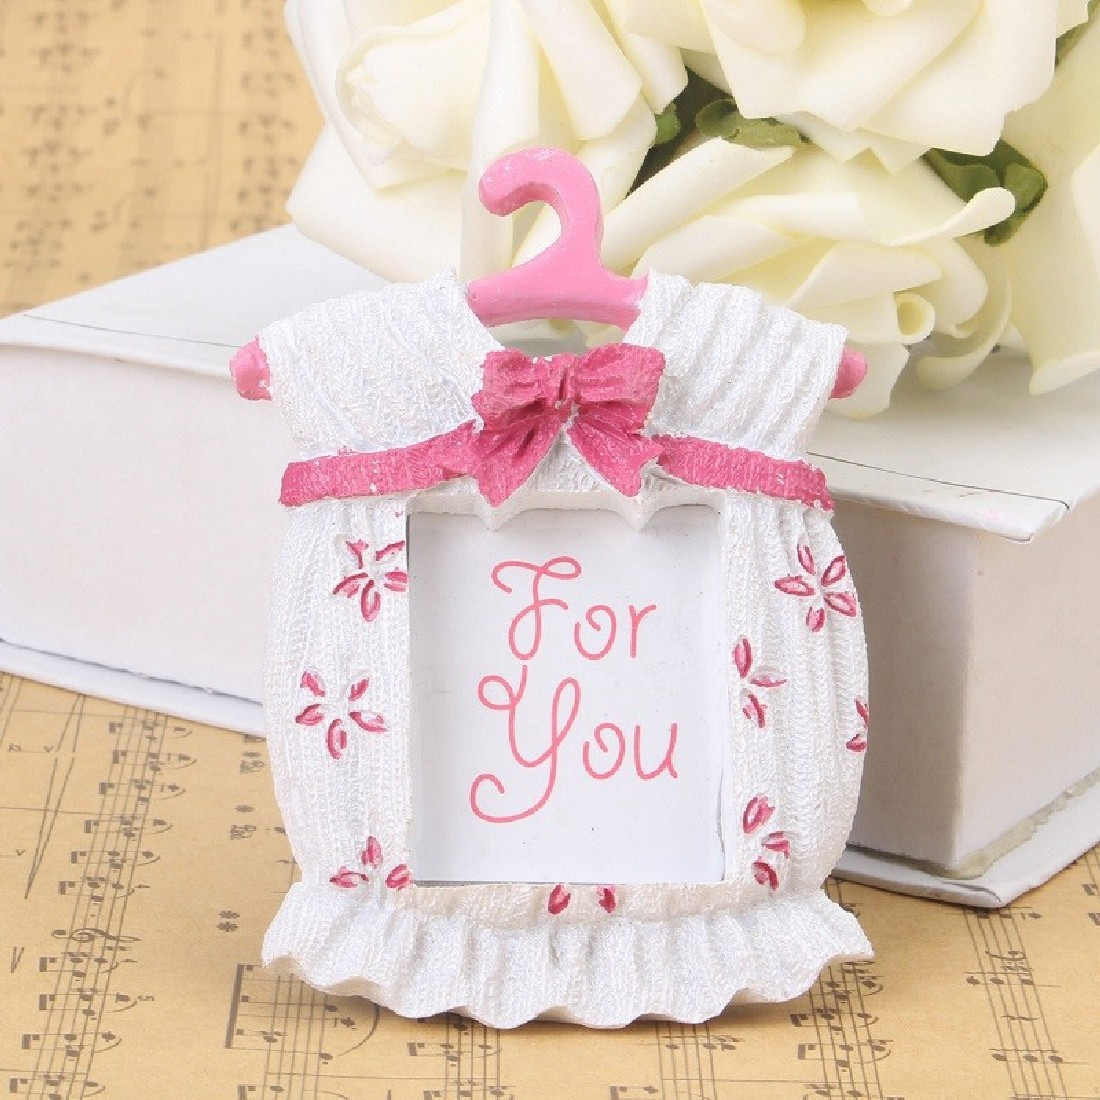 new beautiful household cute pink baby clothes picture frame baby birthday giftschina